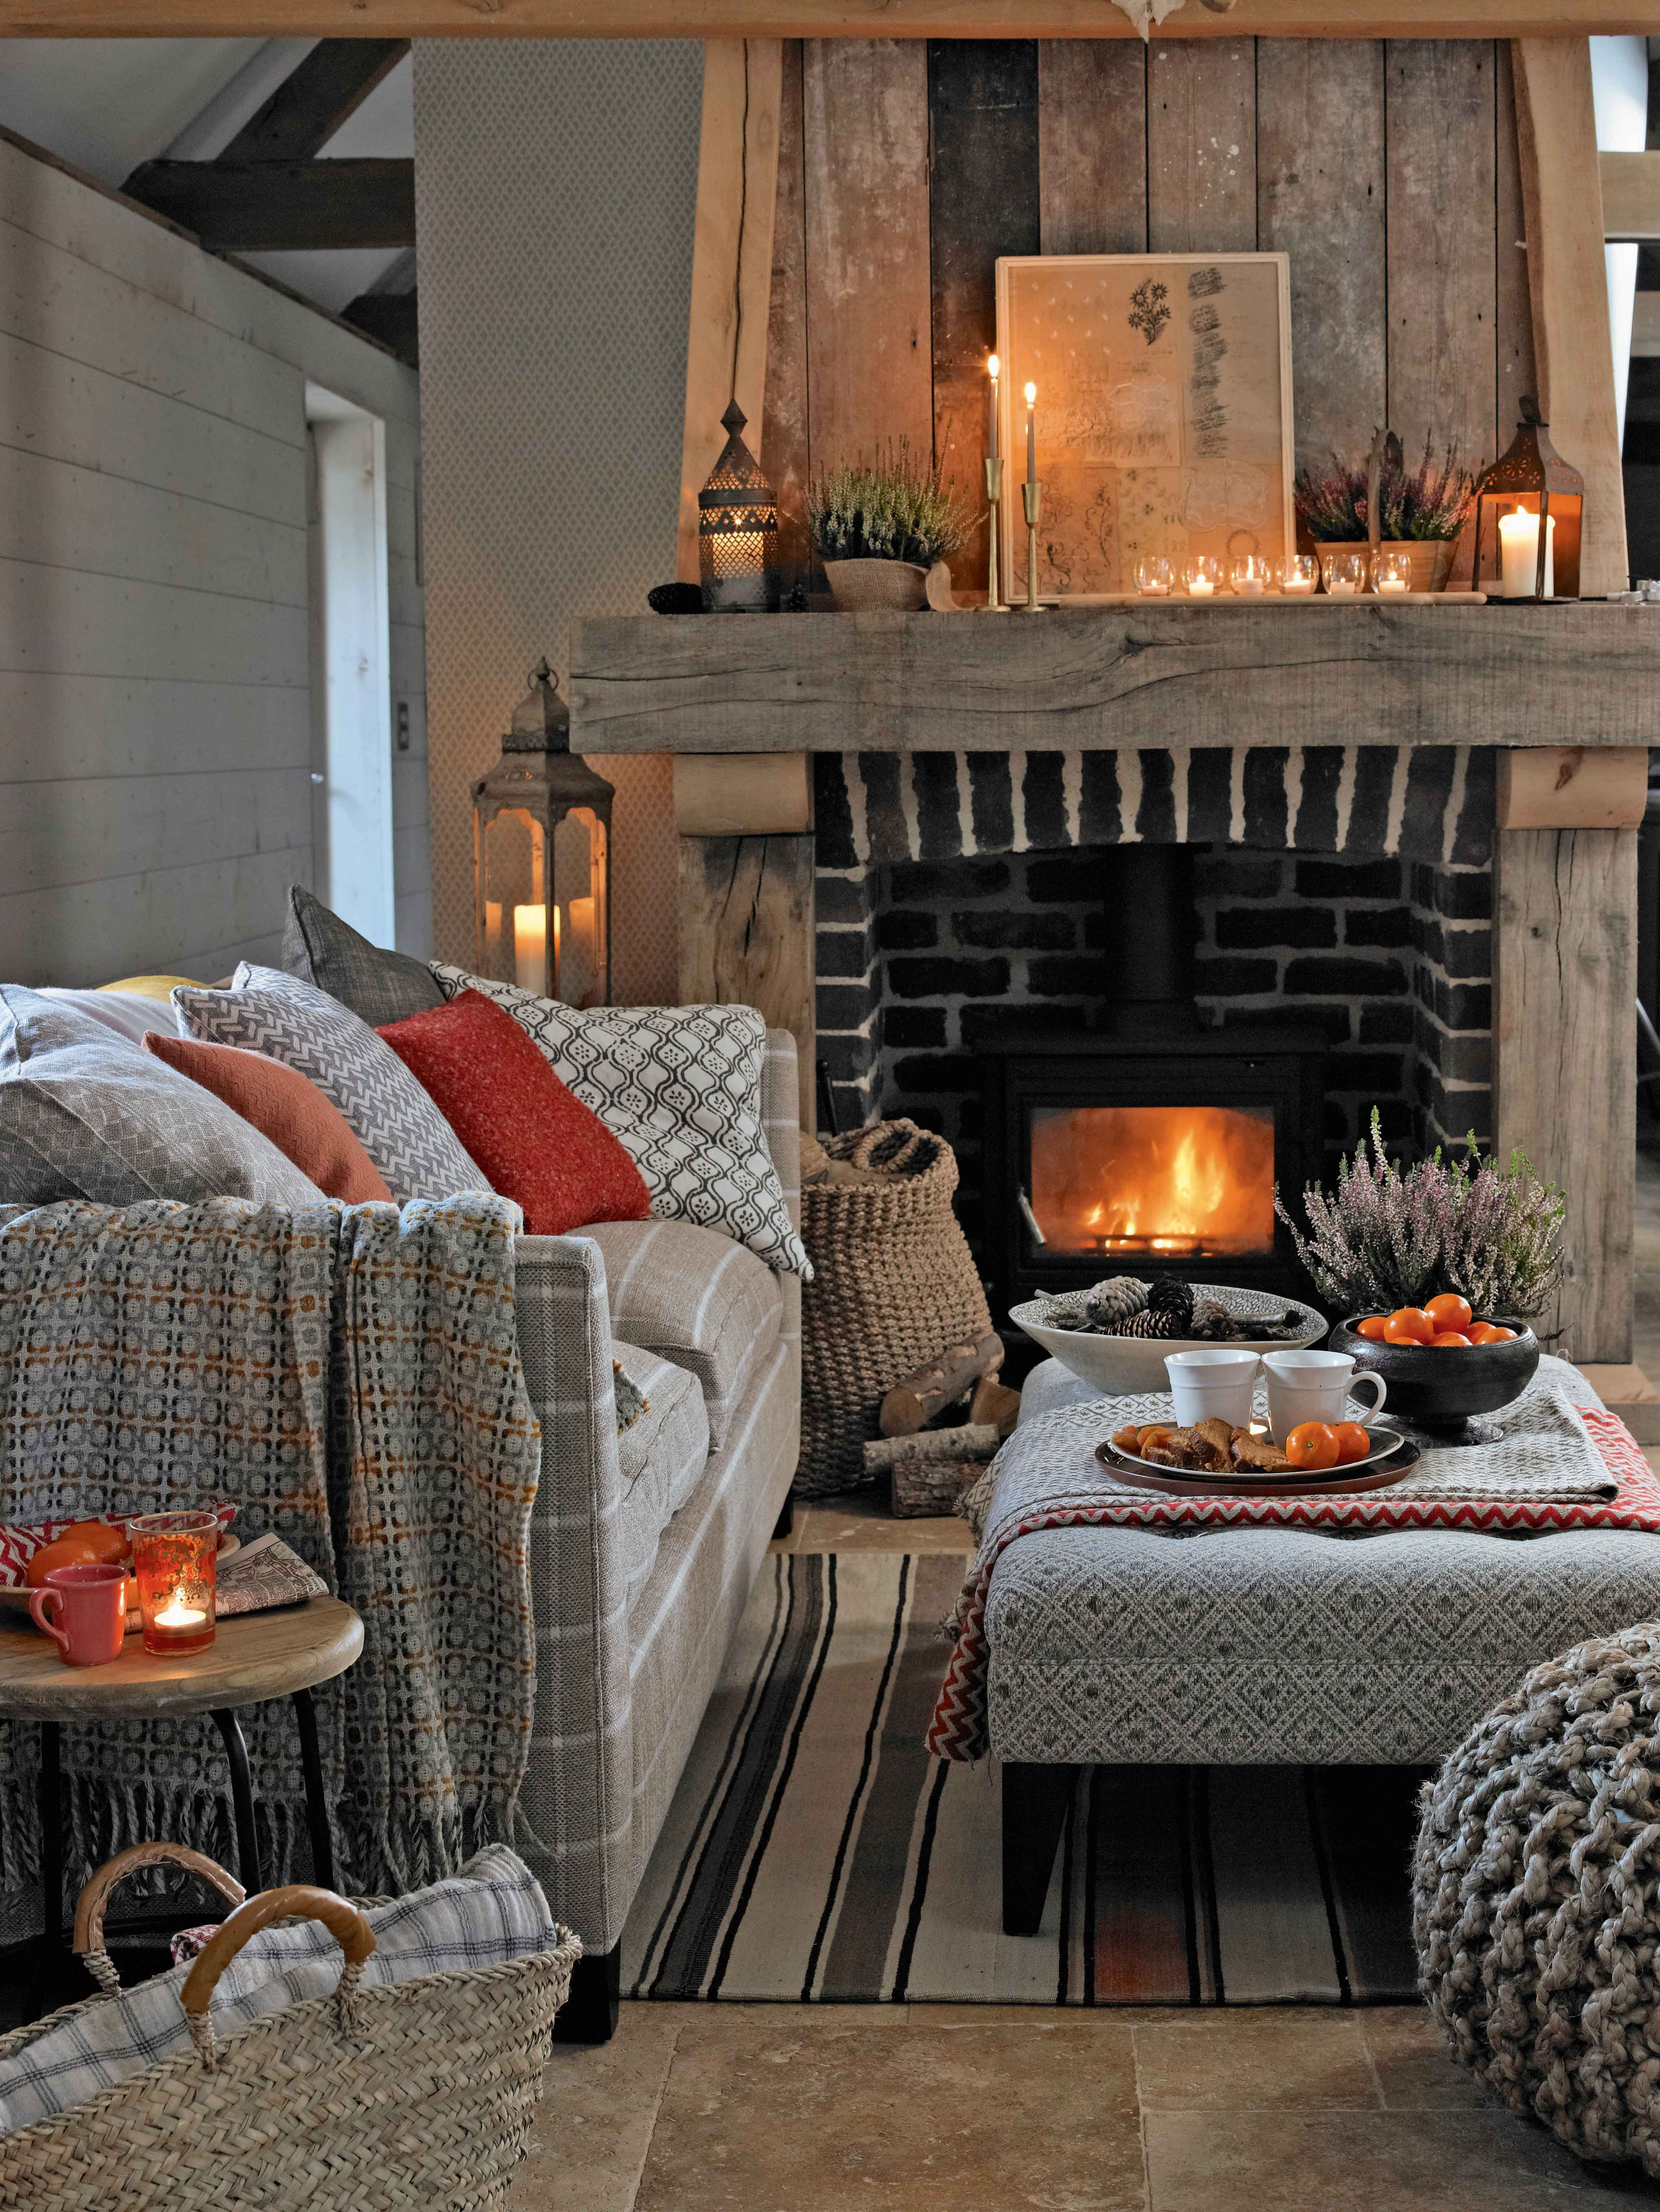 Autumn Living Room Decorating: For A Casual, Comfy Feel, Choose Cushions And A Footstool